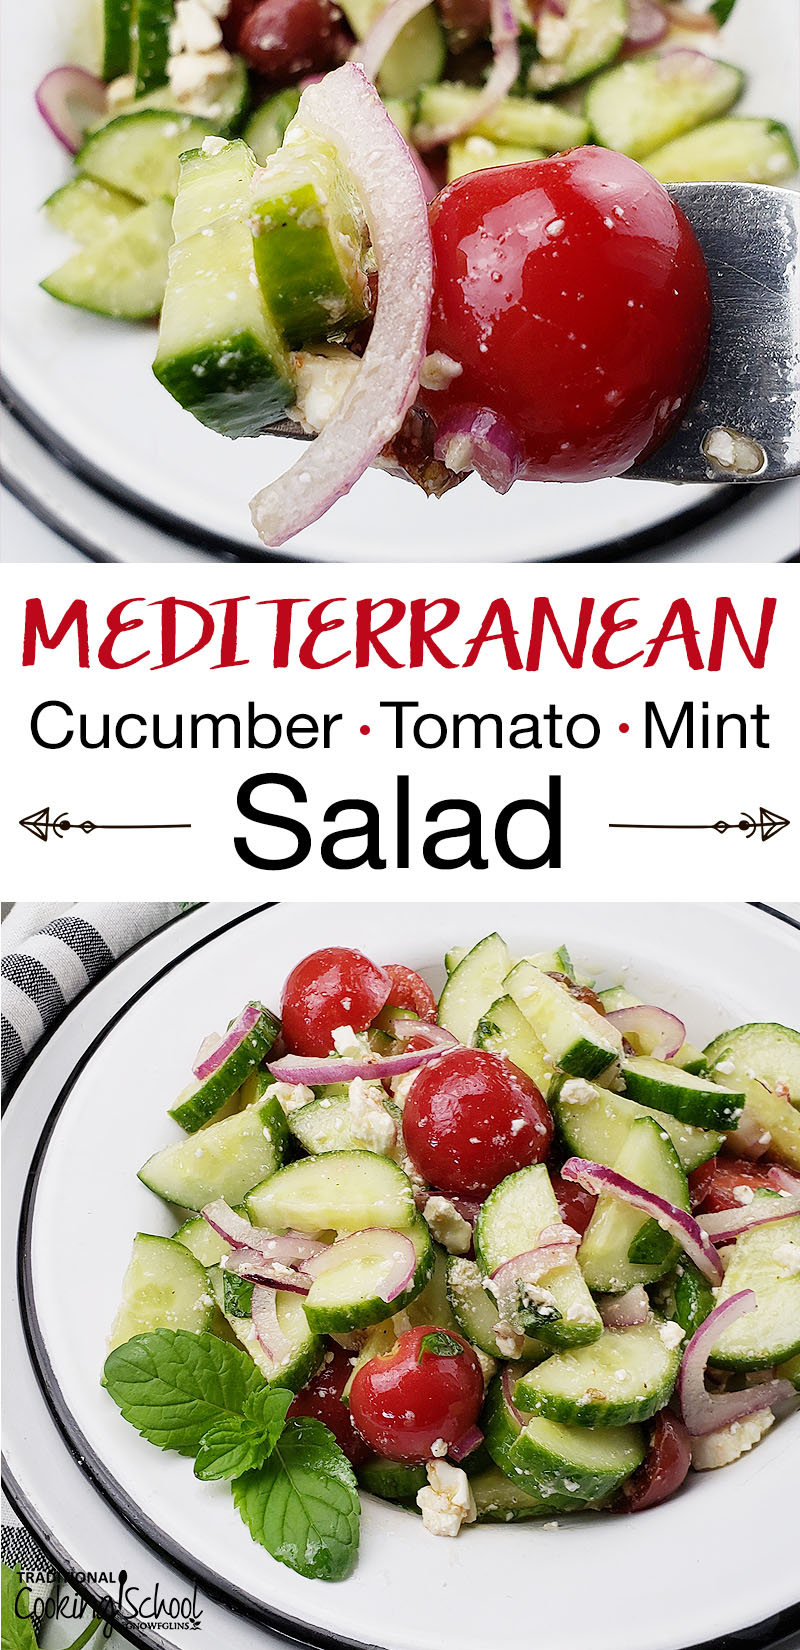 Mediterranean Cucumber-Tomato-Mint Salad | When the cucumbers and tomatoes are in season, I go a little crazy. Can you blame me? We eat 1 of 3 cucumber and/or tomato salads just about every day. Here's one of my favorites! | TraditionalCookingSchool.com